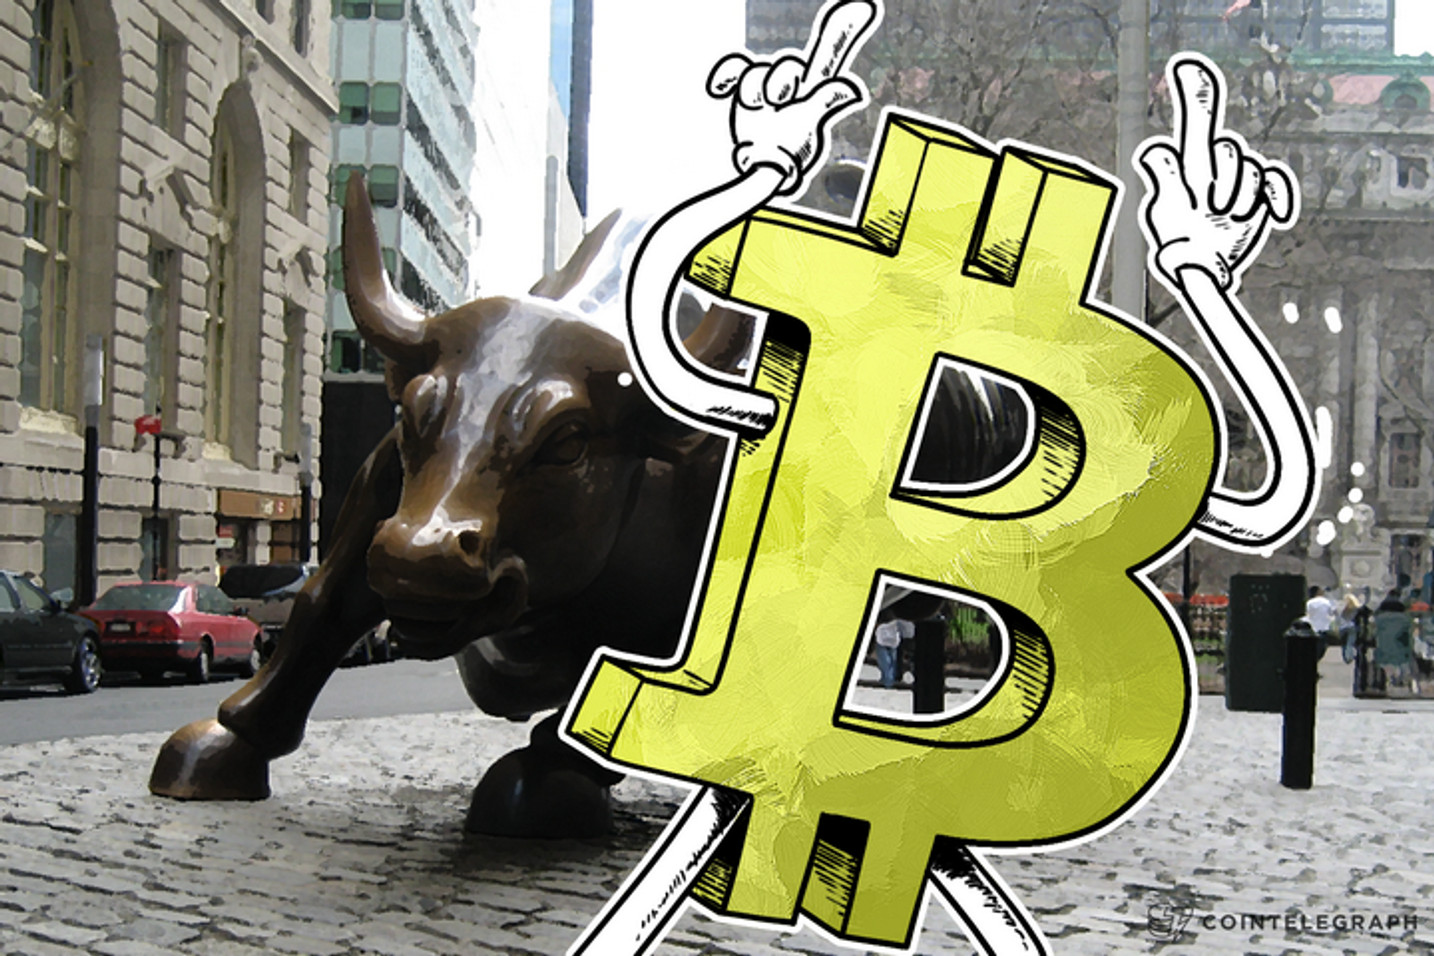 Large Wall Street Firms Look with Increasing Interest Toward Bitcoin